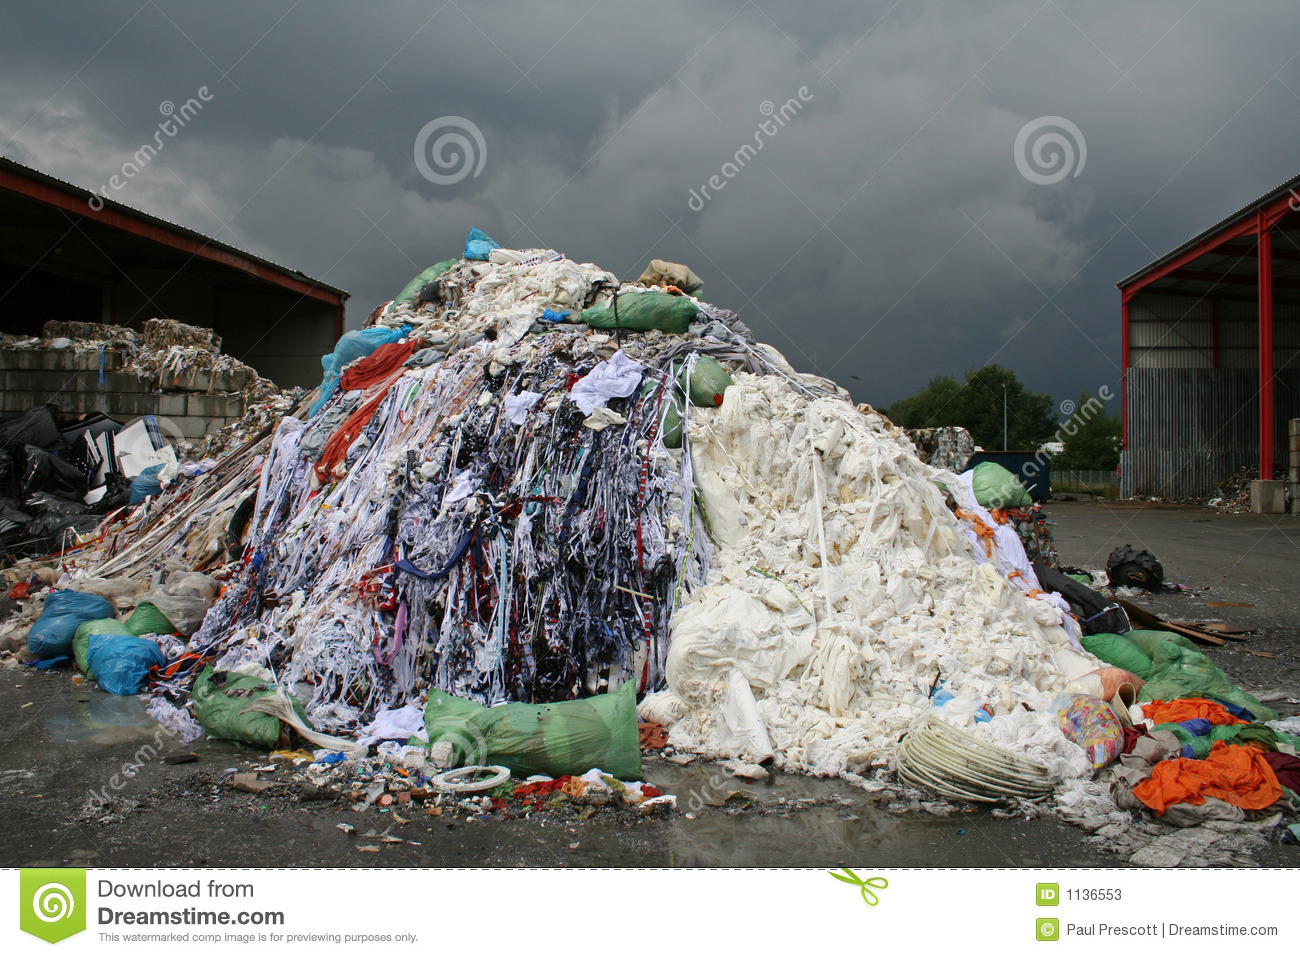 Waste Material Images Of Waste Material Stock Photos Image 1136553